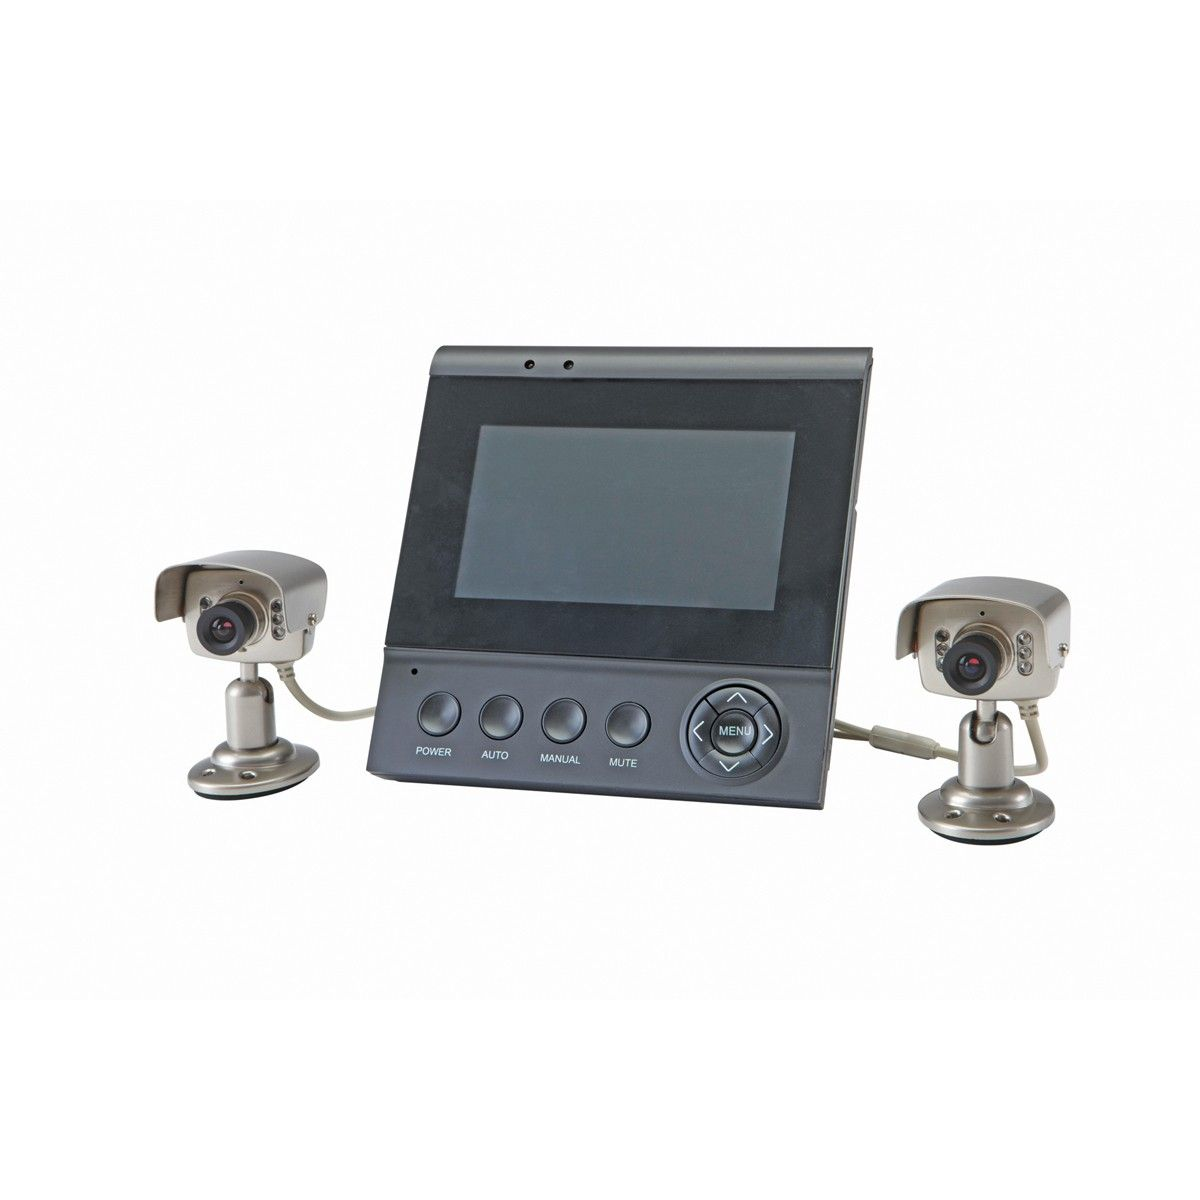 Color Security System With Night Vision Security Systems